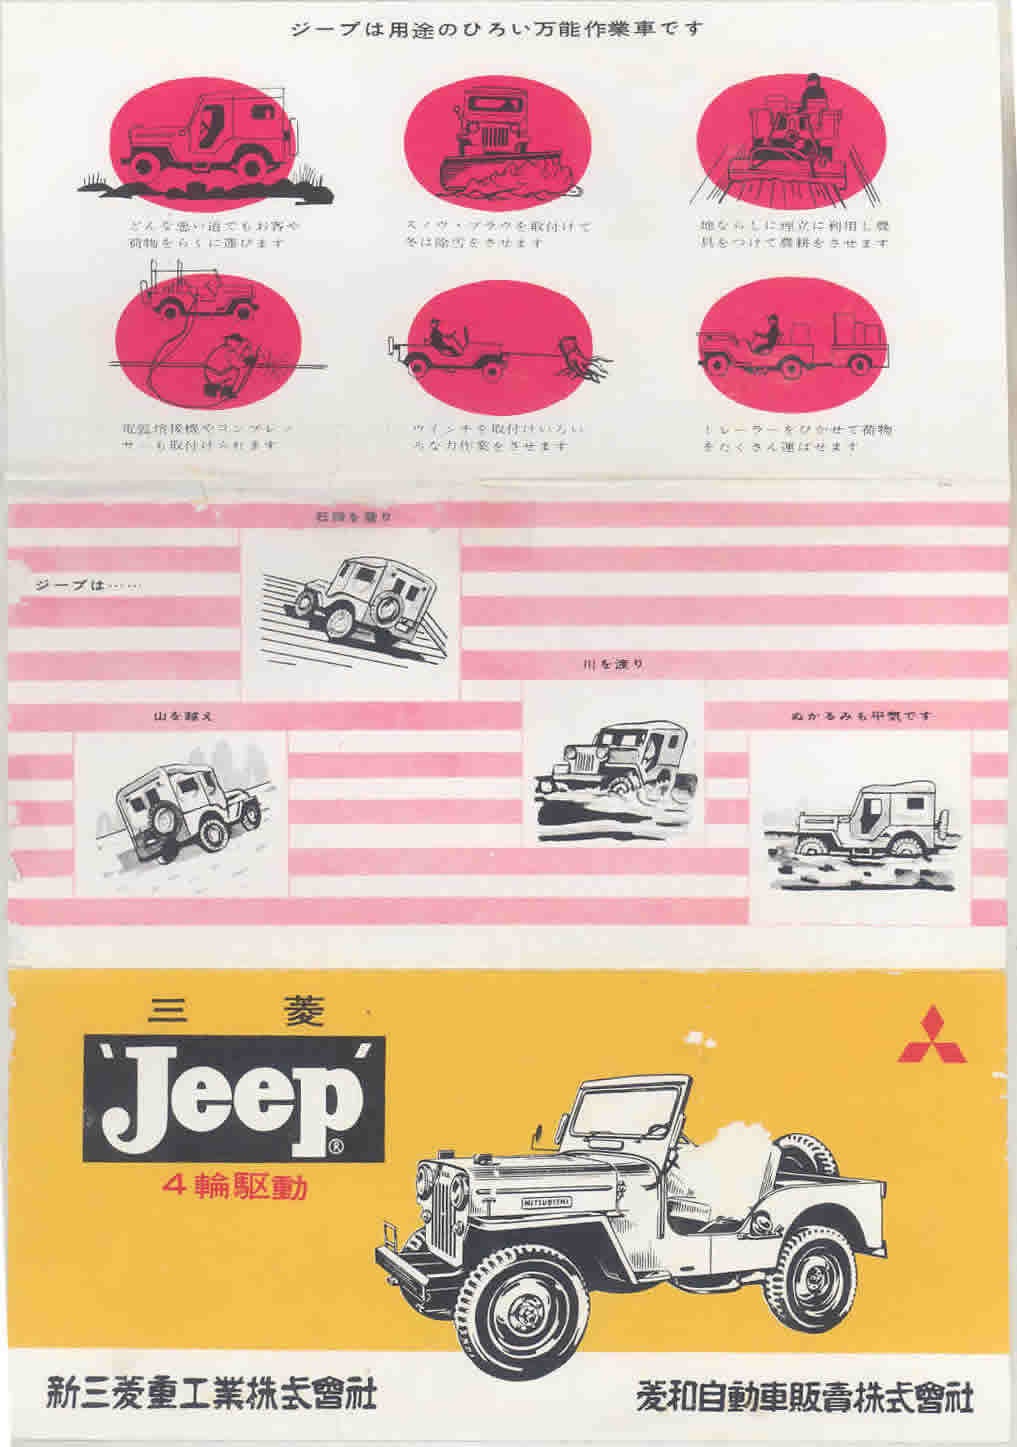 Mitsubishi Ewillys Fuse Box Cover Car Truck Parts Ebay 1960ish Jeep Mailer On